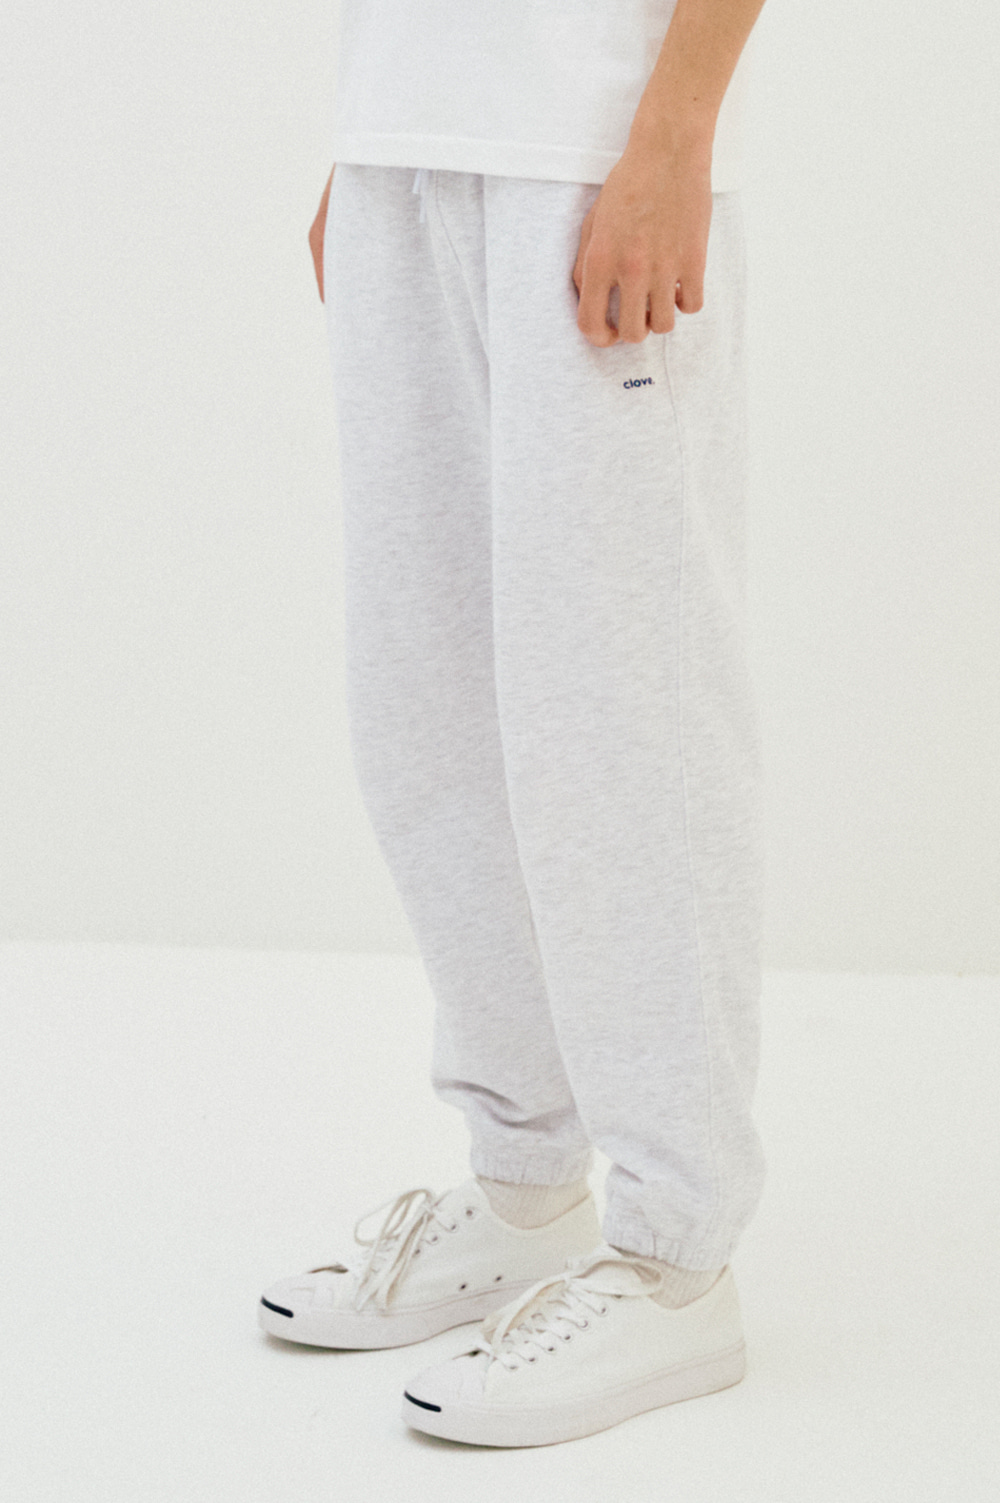 clove - [이효리 착용]Active Sweat Pants_Men (Light Grey)